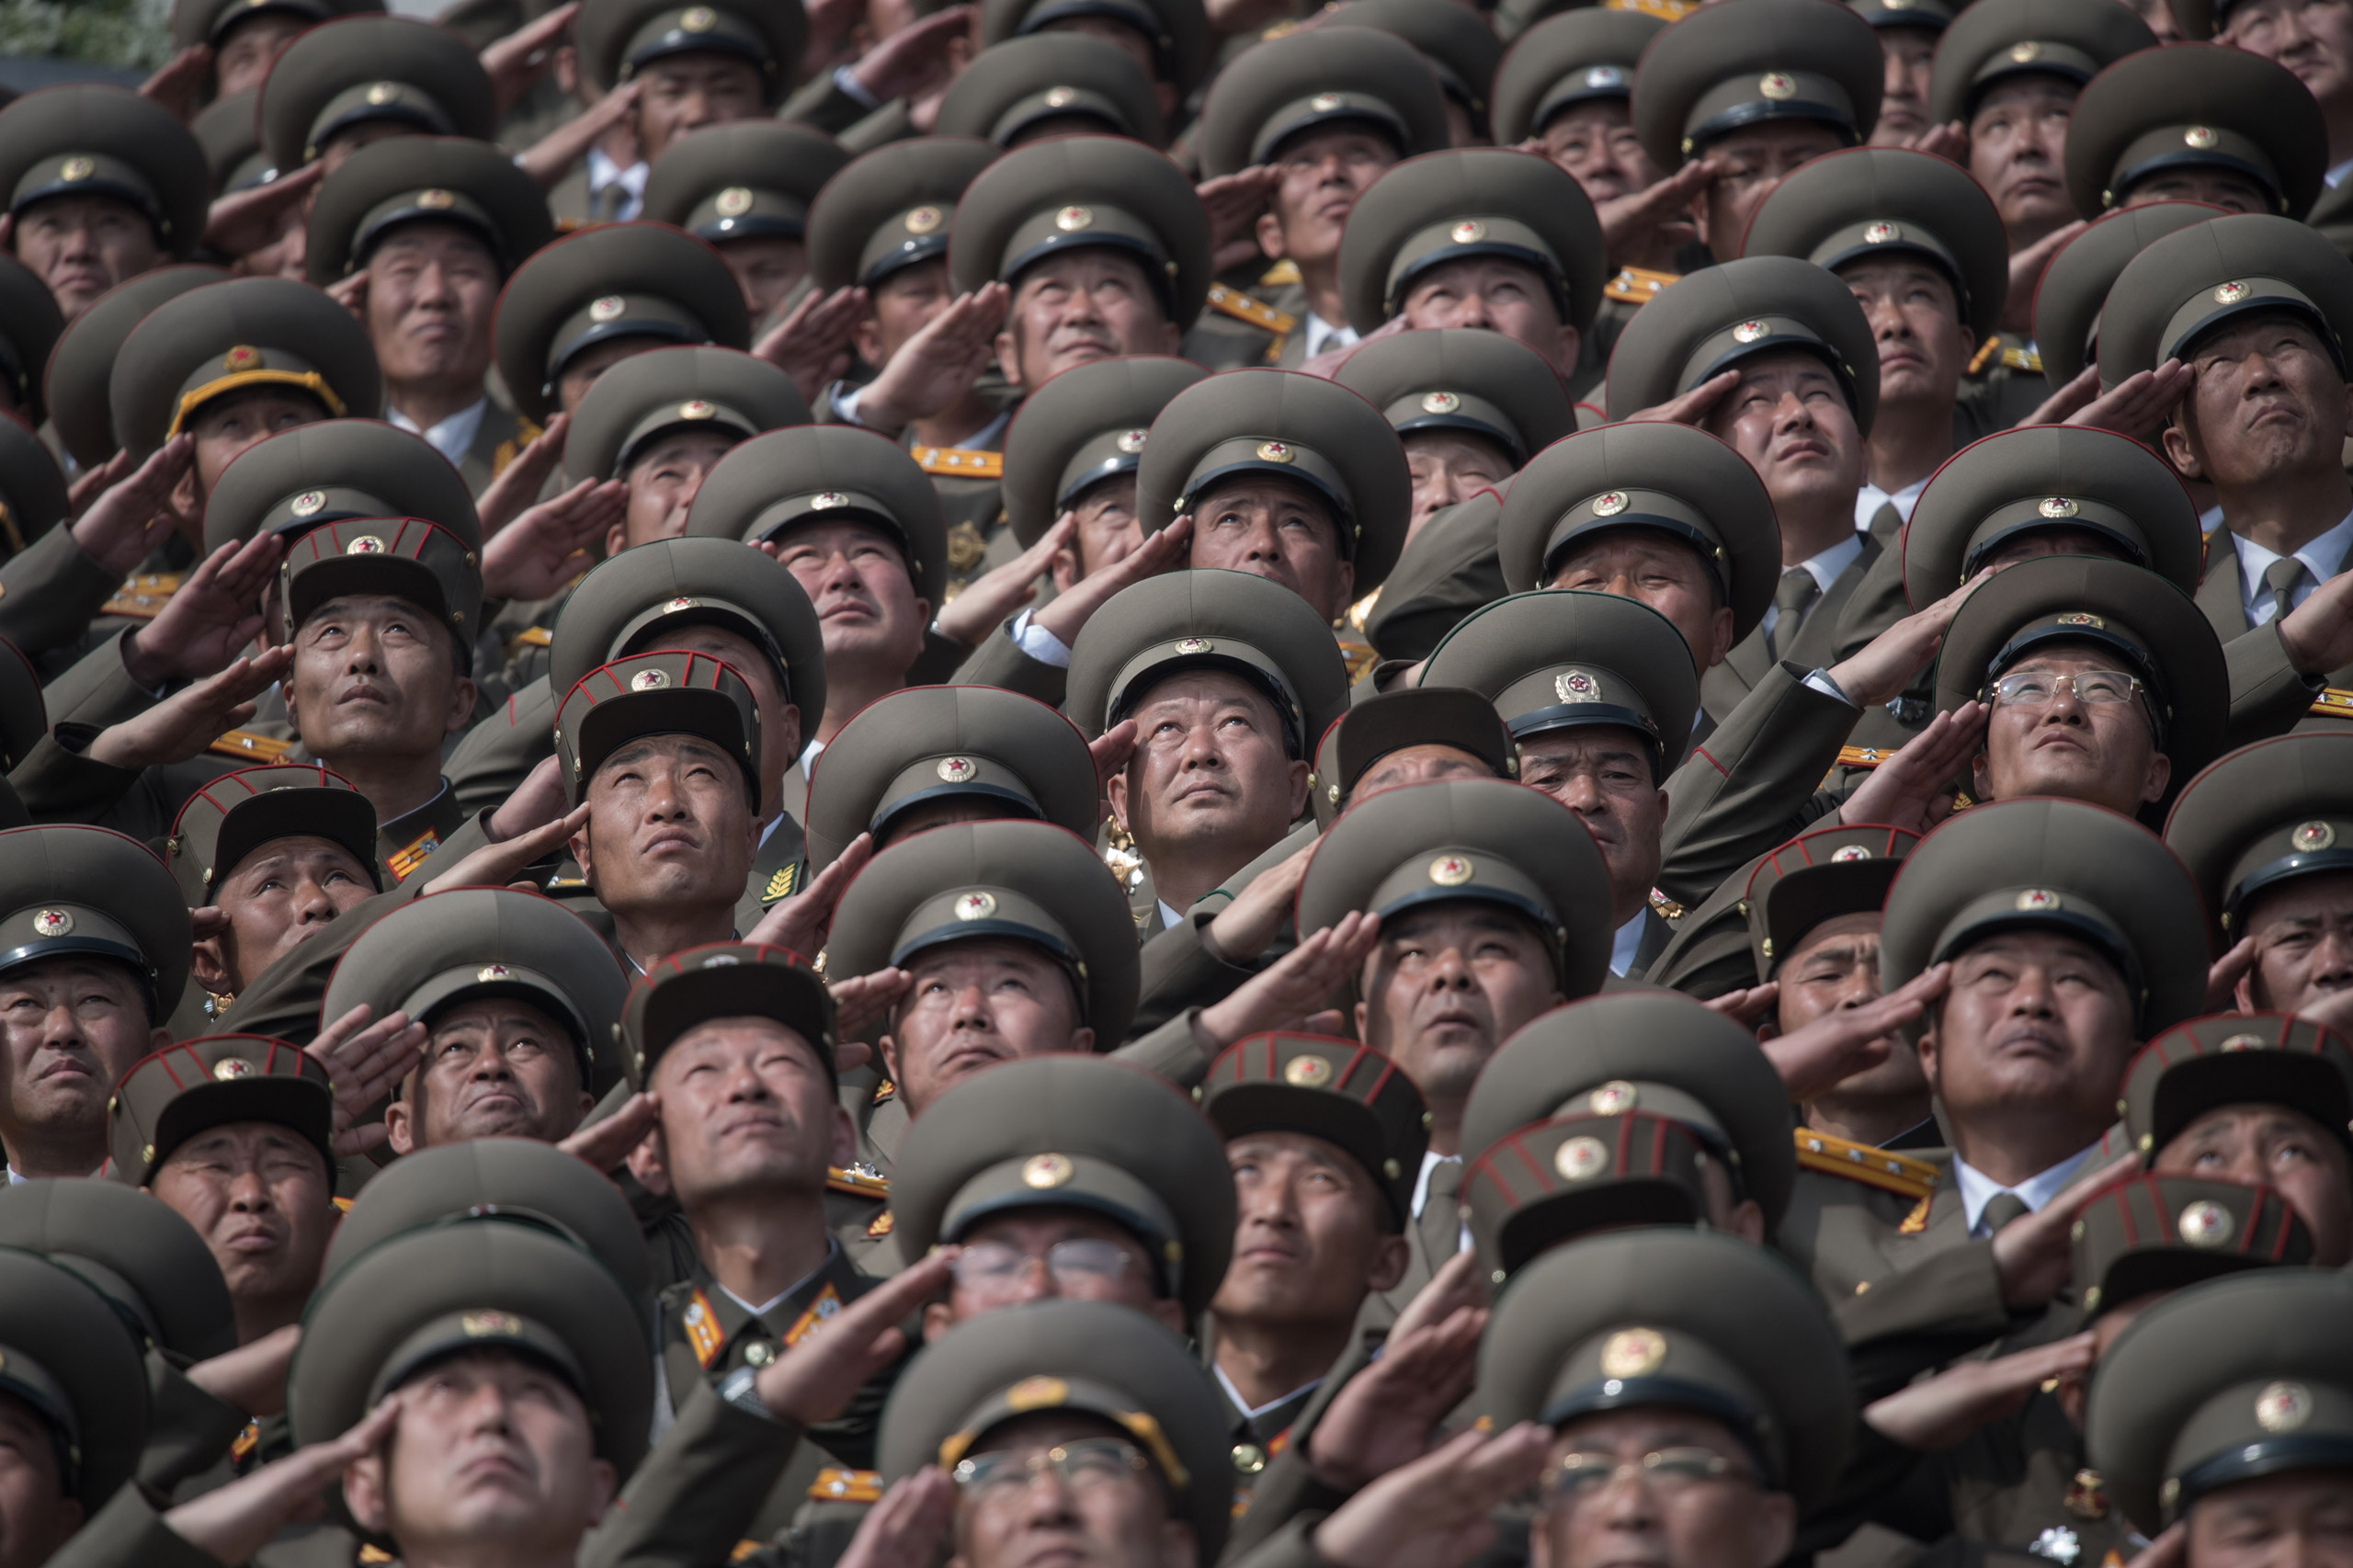 Korean People's Army (KPA) soldiers salute as they watch a military parade marking the 105th anniversary of the birth of late North Korean leader Kim Il-Sung, in Pyongyang on April 15, 2017.